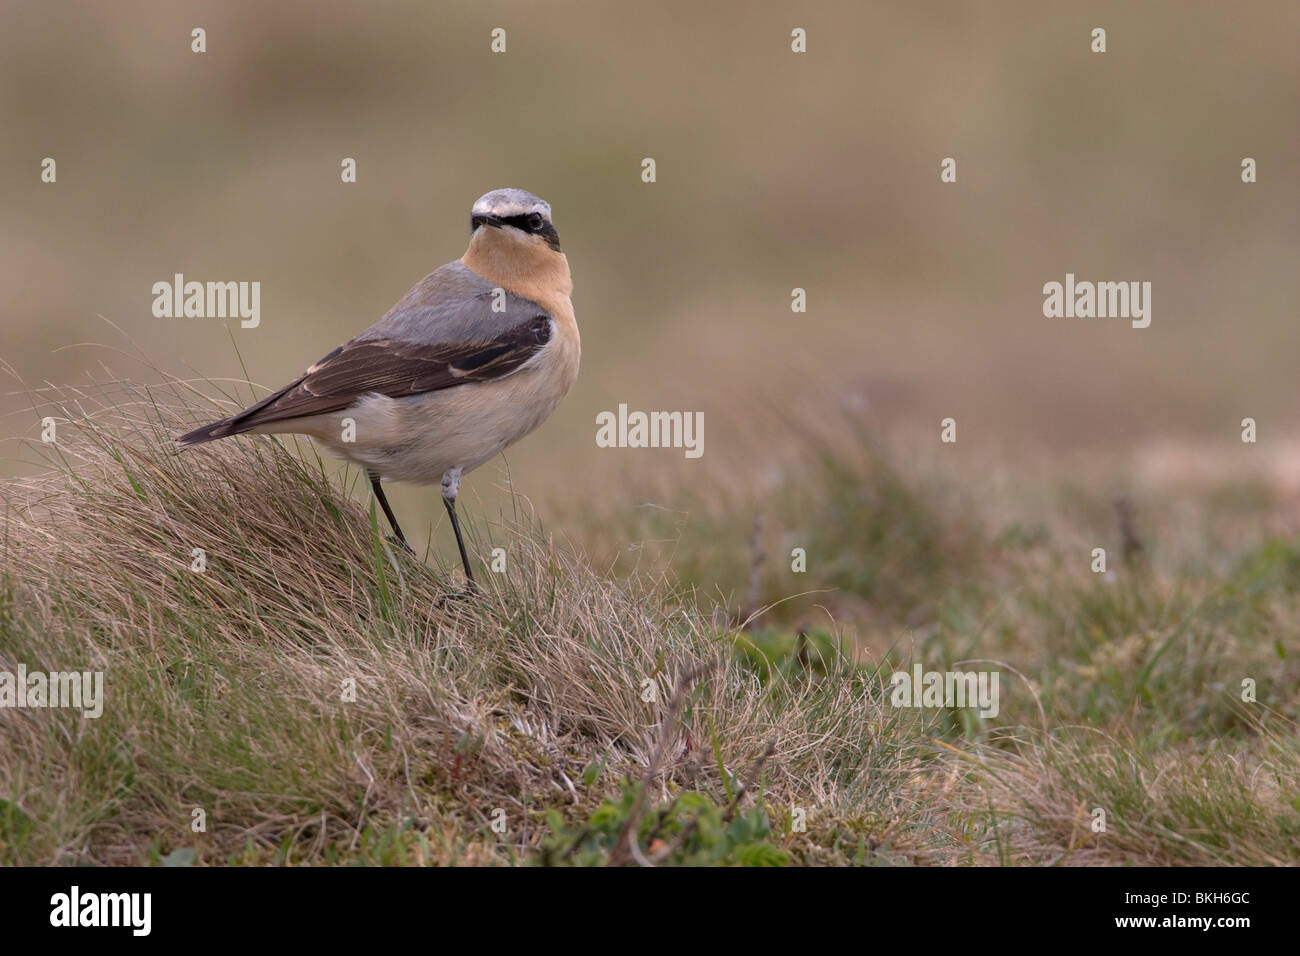 Northern Wheatear, Oenanthe oenanthe, Tapuit Stock Photo